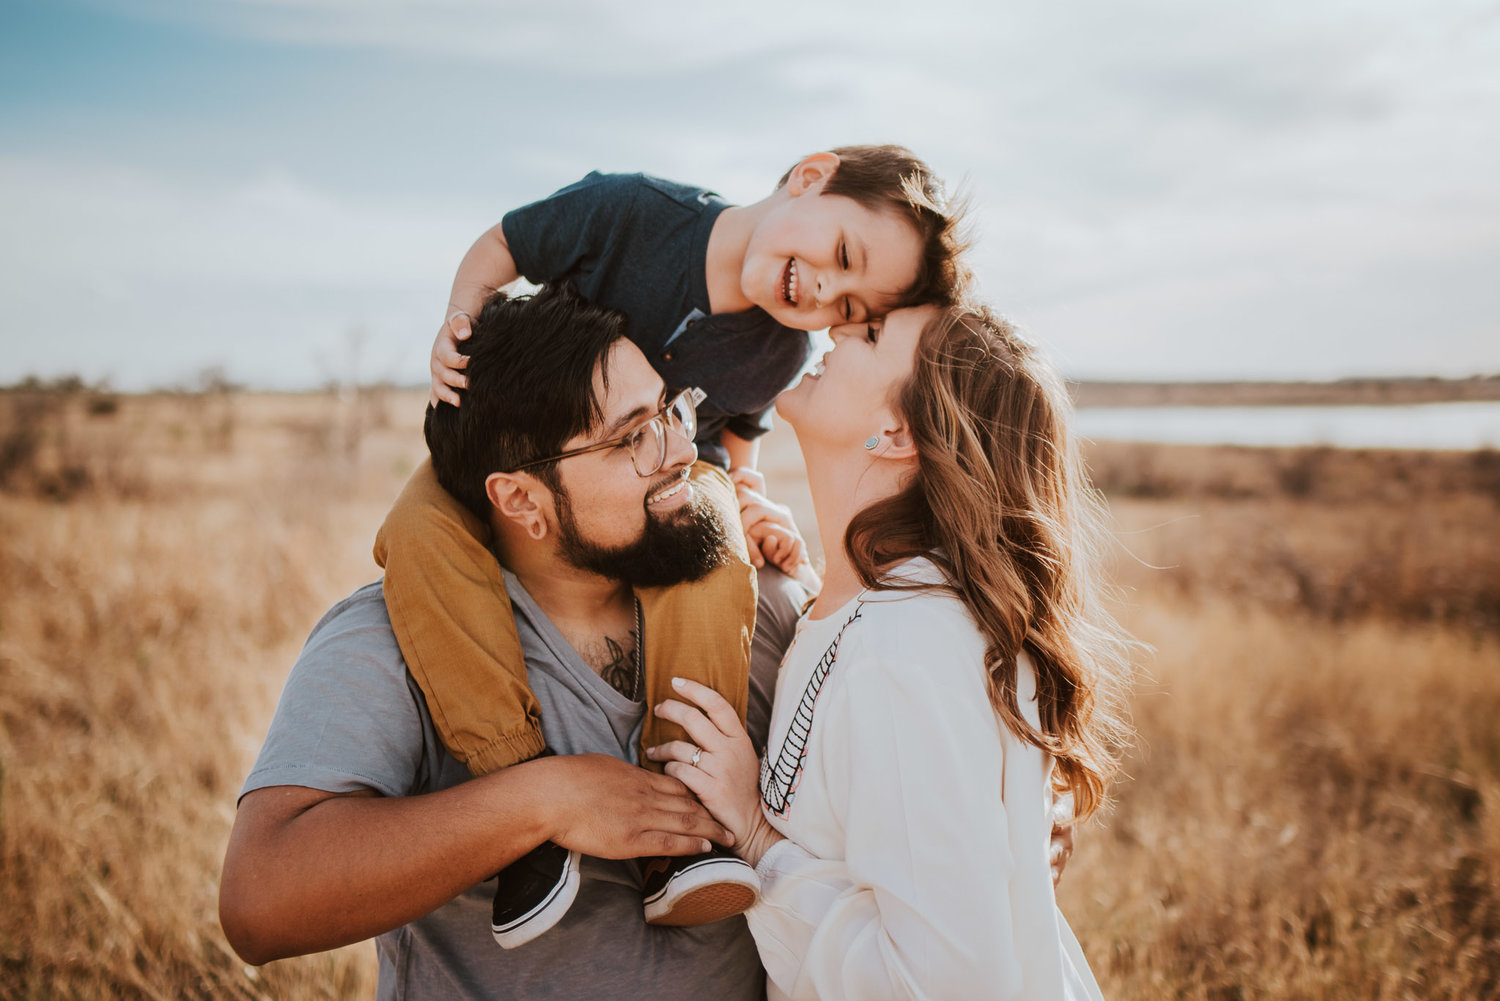 Family Photography - My real passion is photographing weddings and couples. I however enjoy the occasional family session as well. So if you or anyone else you know is looking for some family photos, let me know.